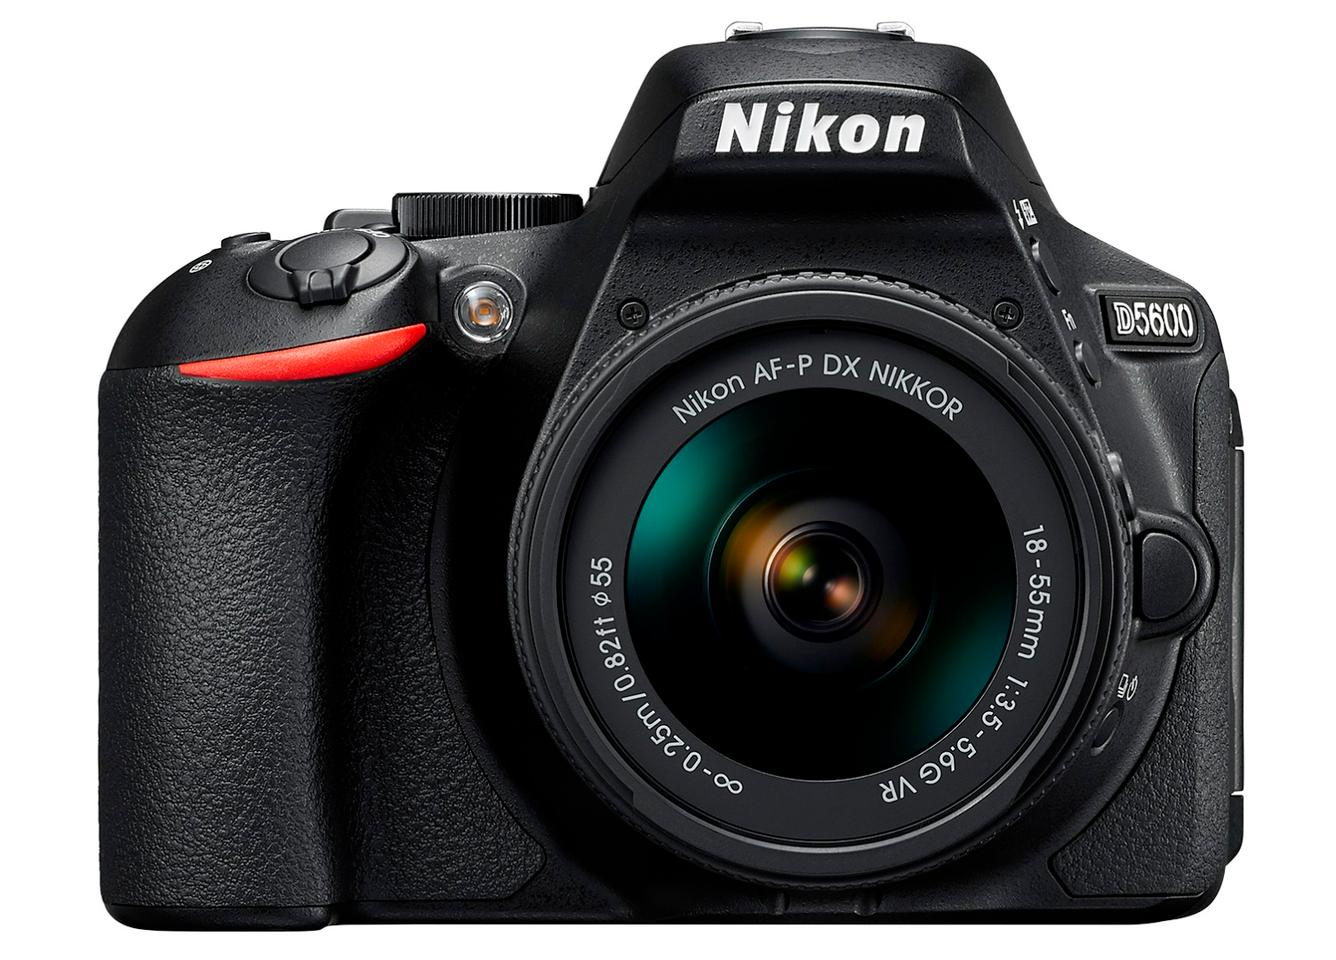 The SnapBridge connectivity of the Nikon D5600 DSLR makes it easy and quick to share photos and videos